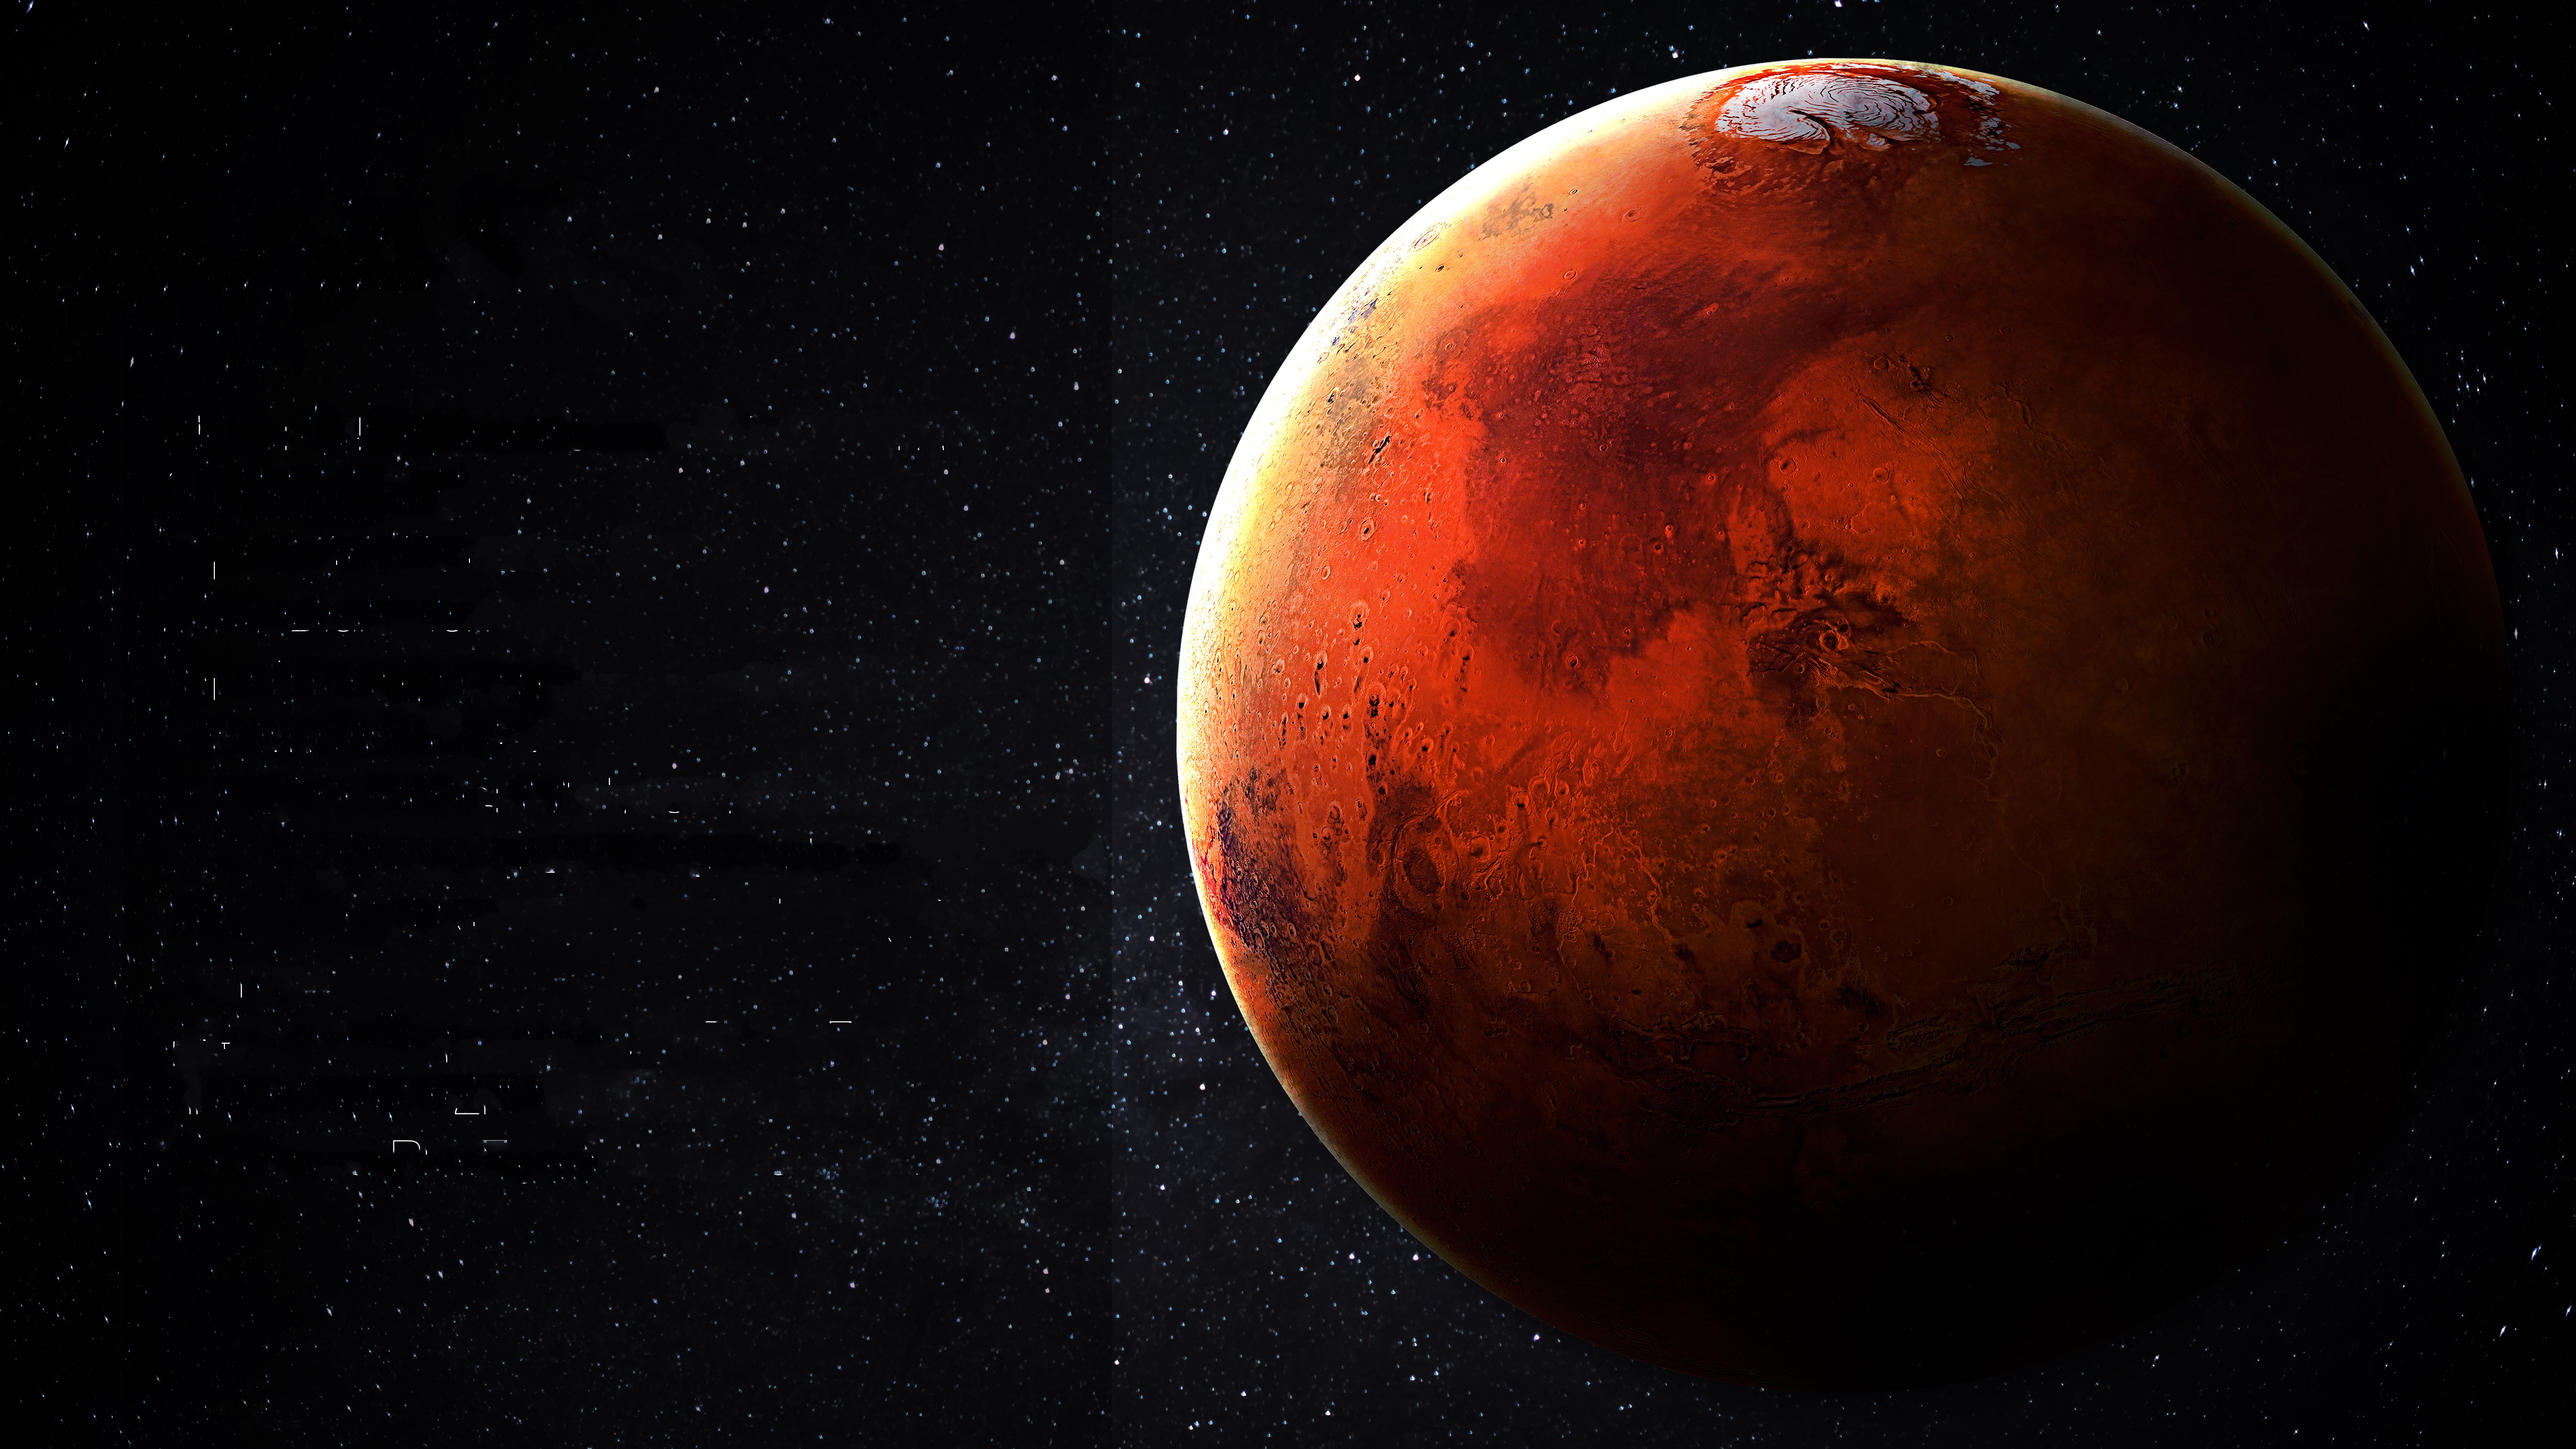 Mars 5k HD World 4k Wallpapers Backgrounds s and